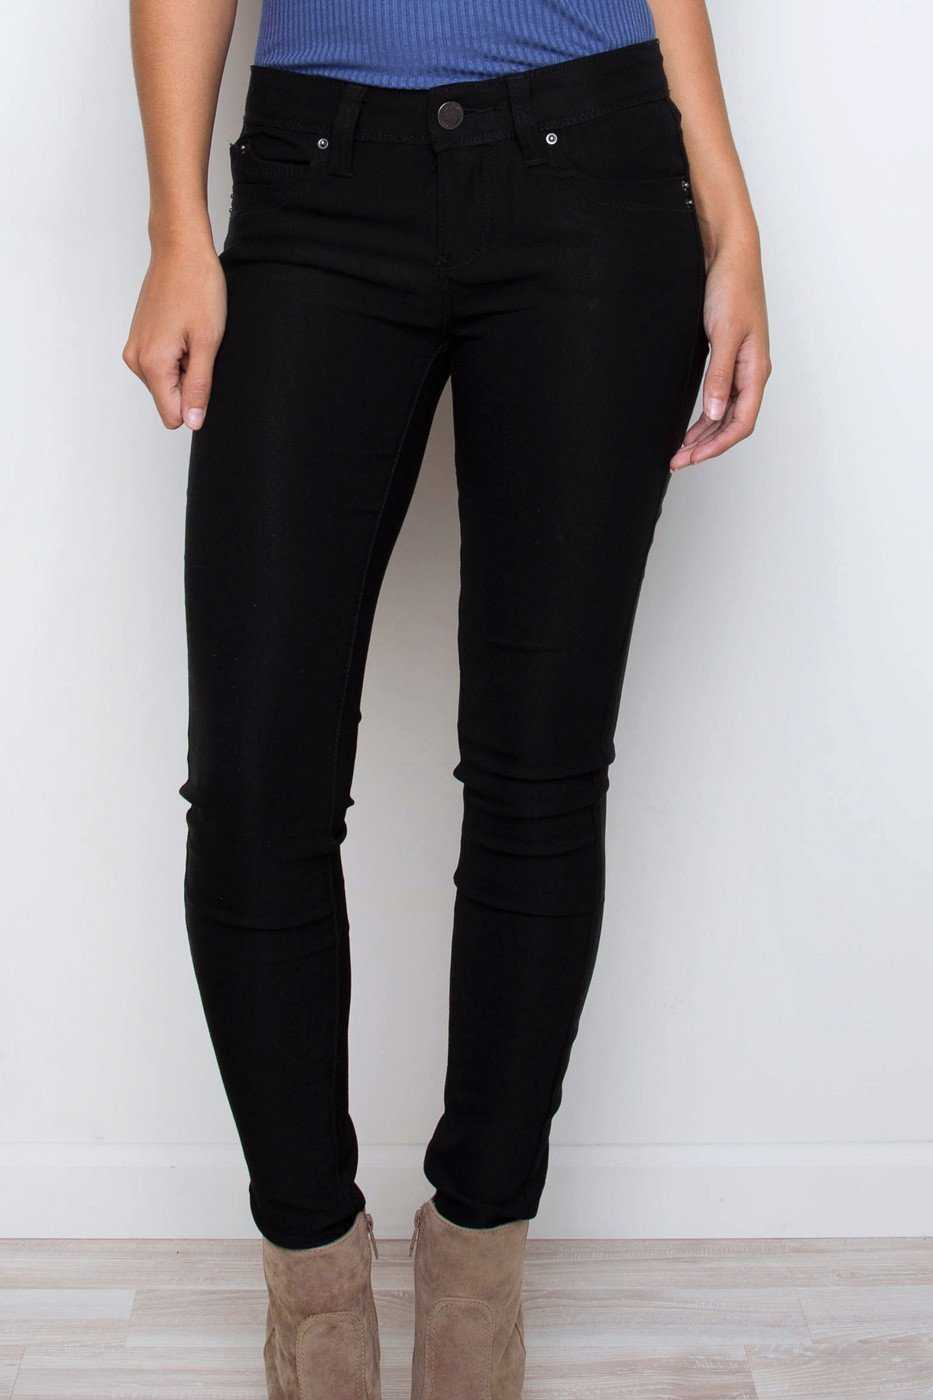 Pants - Set Free Skinny Jeans - Black